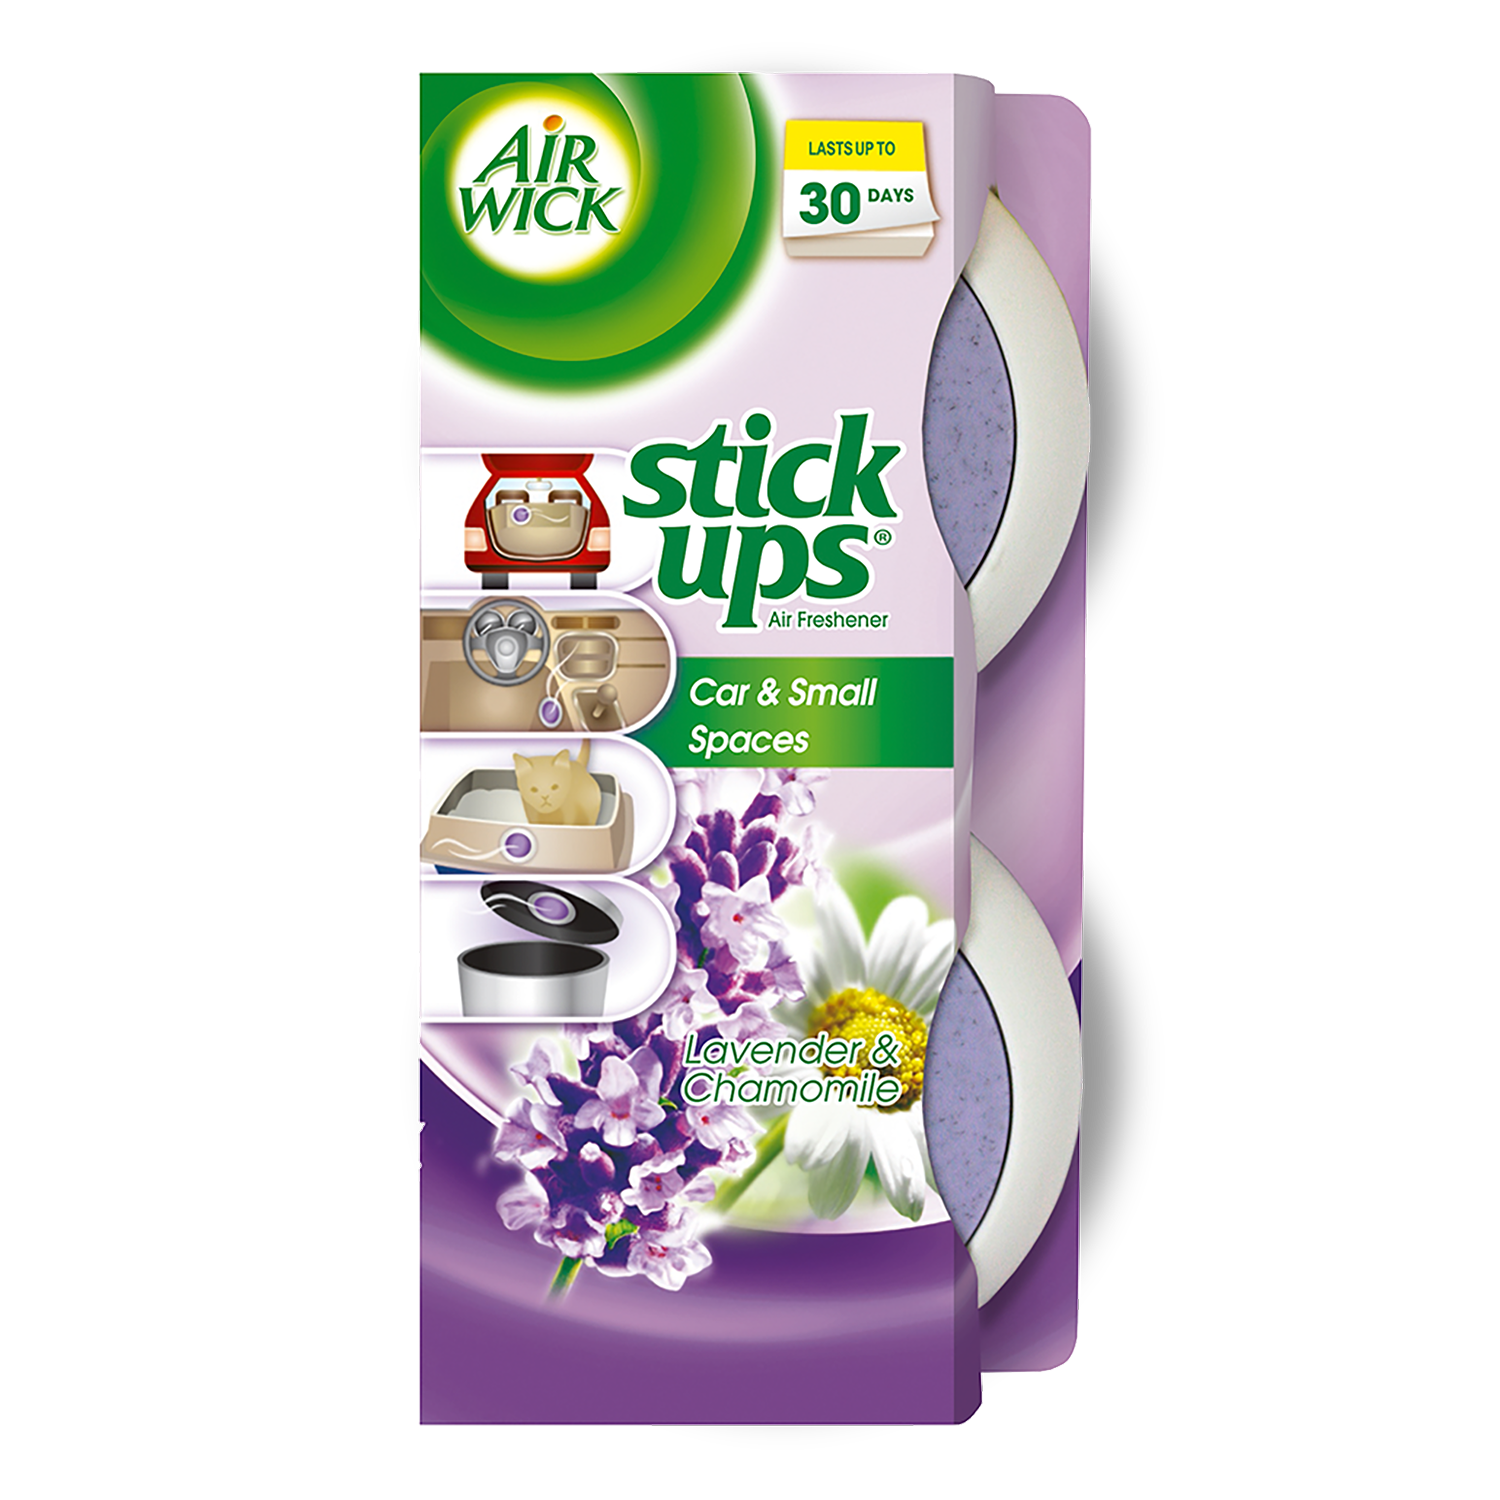 Air Wick Stick Ups 2in1 Lavender